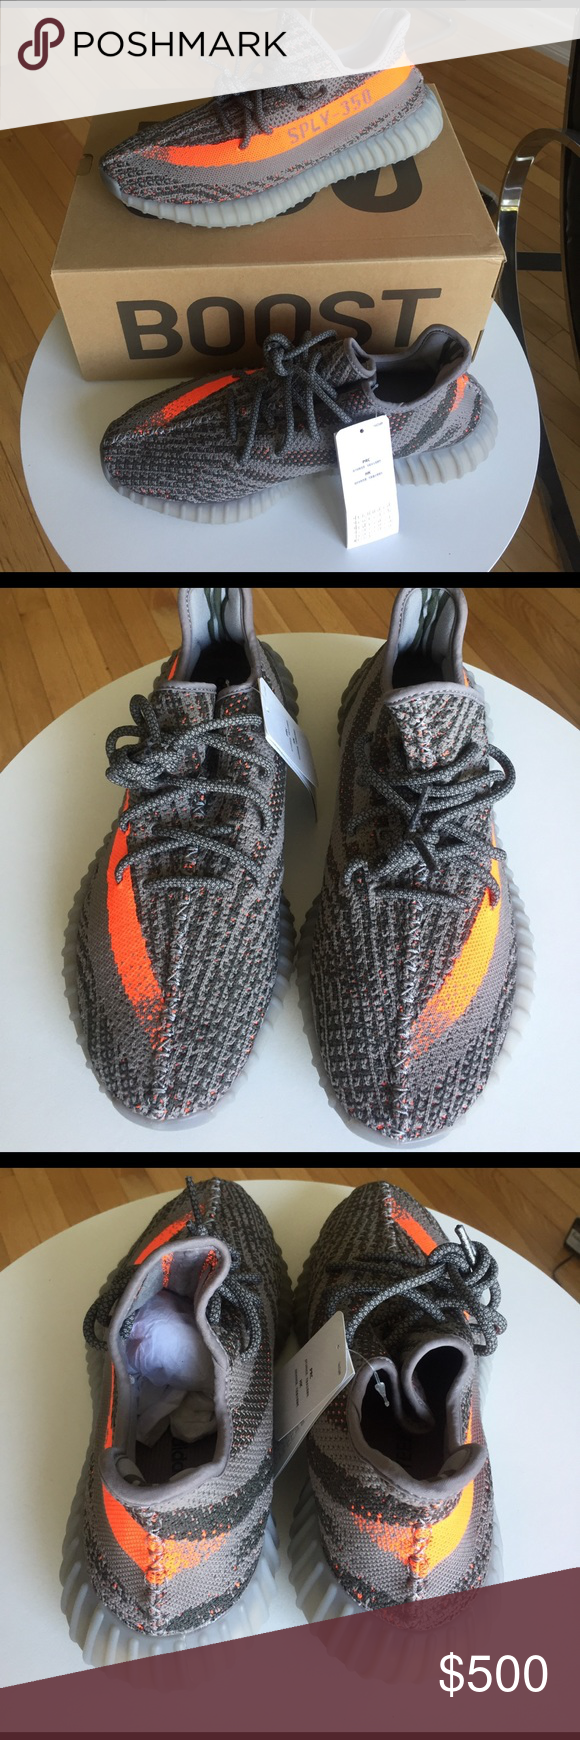 Adidas Yeezy Boost 350 V2 Men Running Shoes BB1829 Workout